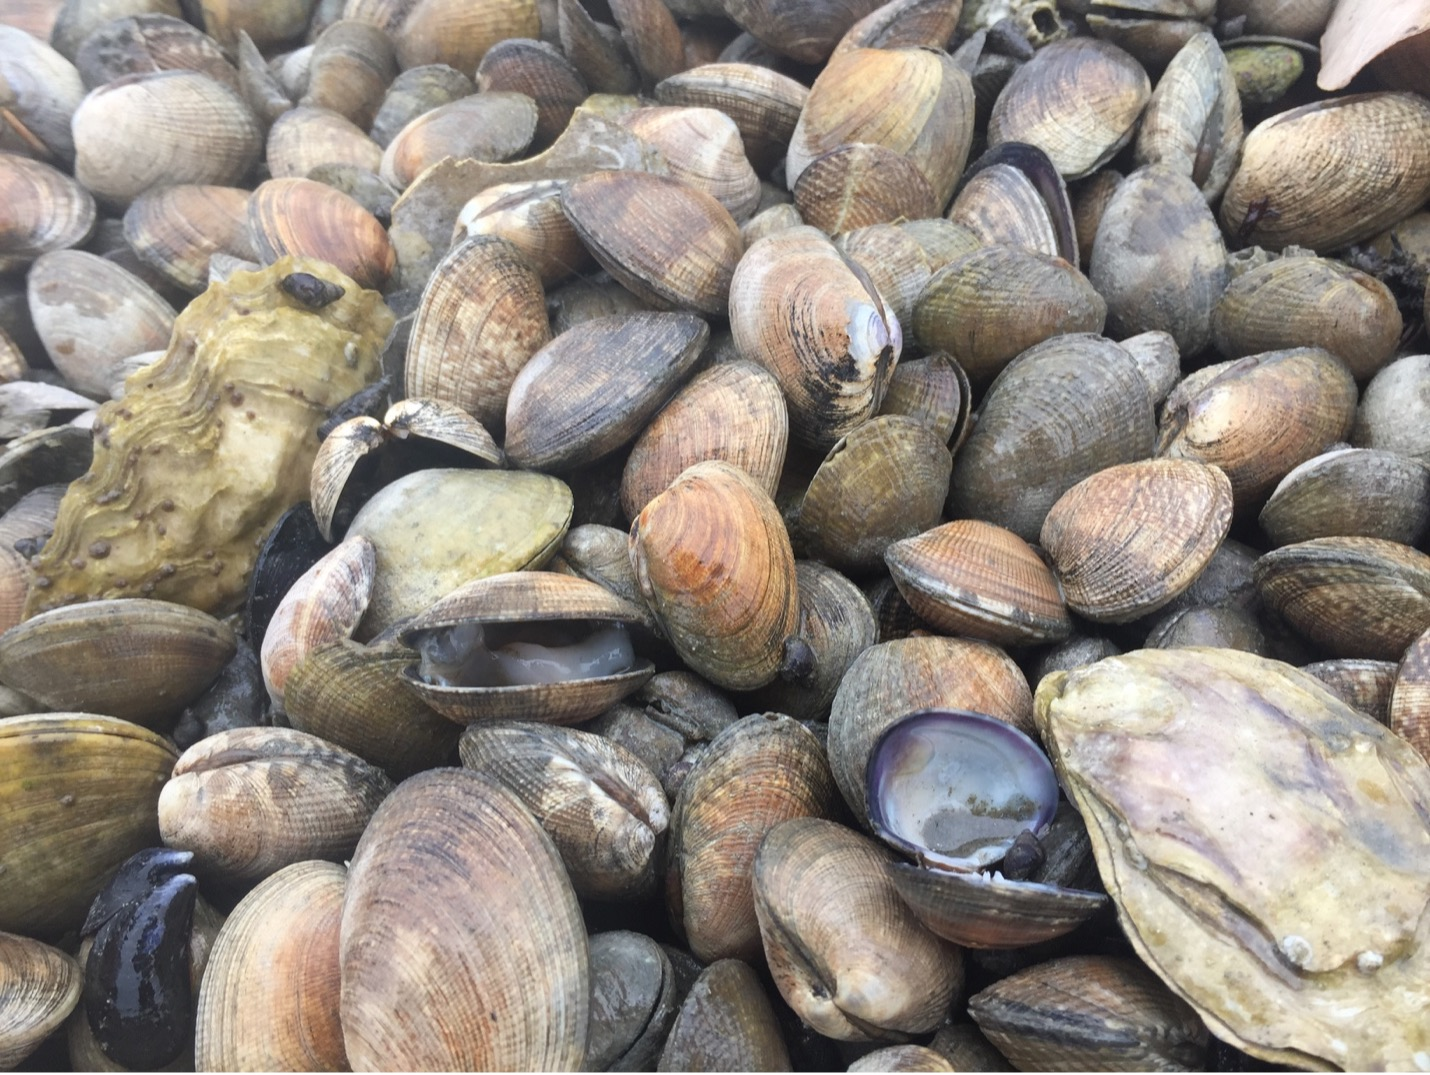 Researchers Discover <i>Yessotoxins</i> to be a Culprit Behind Summer Mass Shellfish Mortality Events in Washington